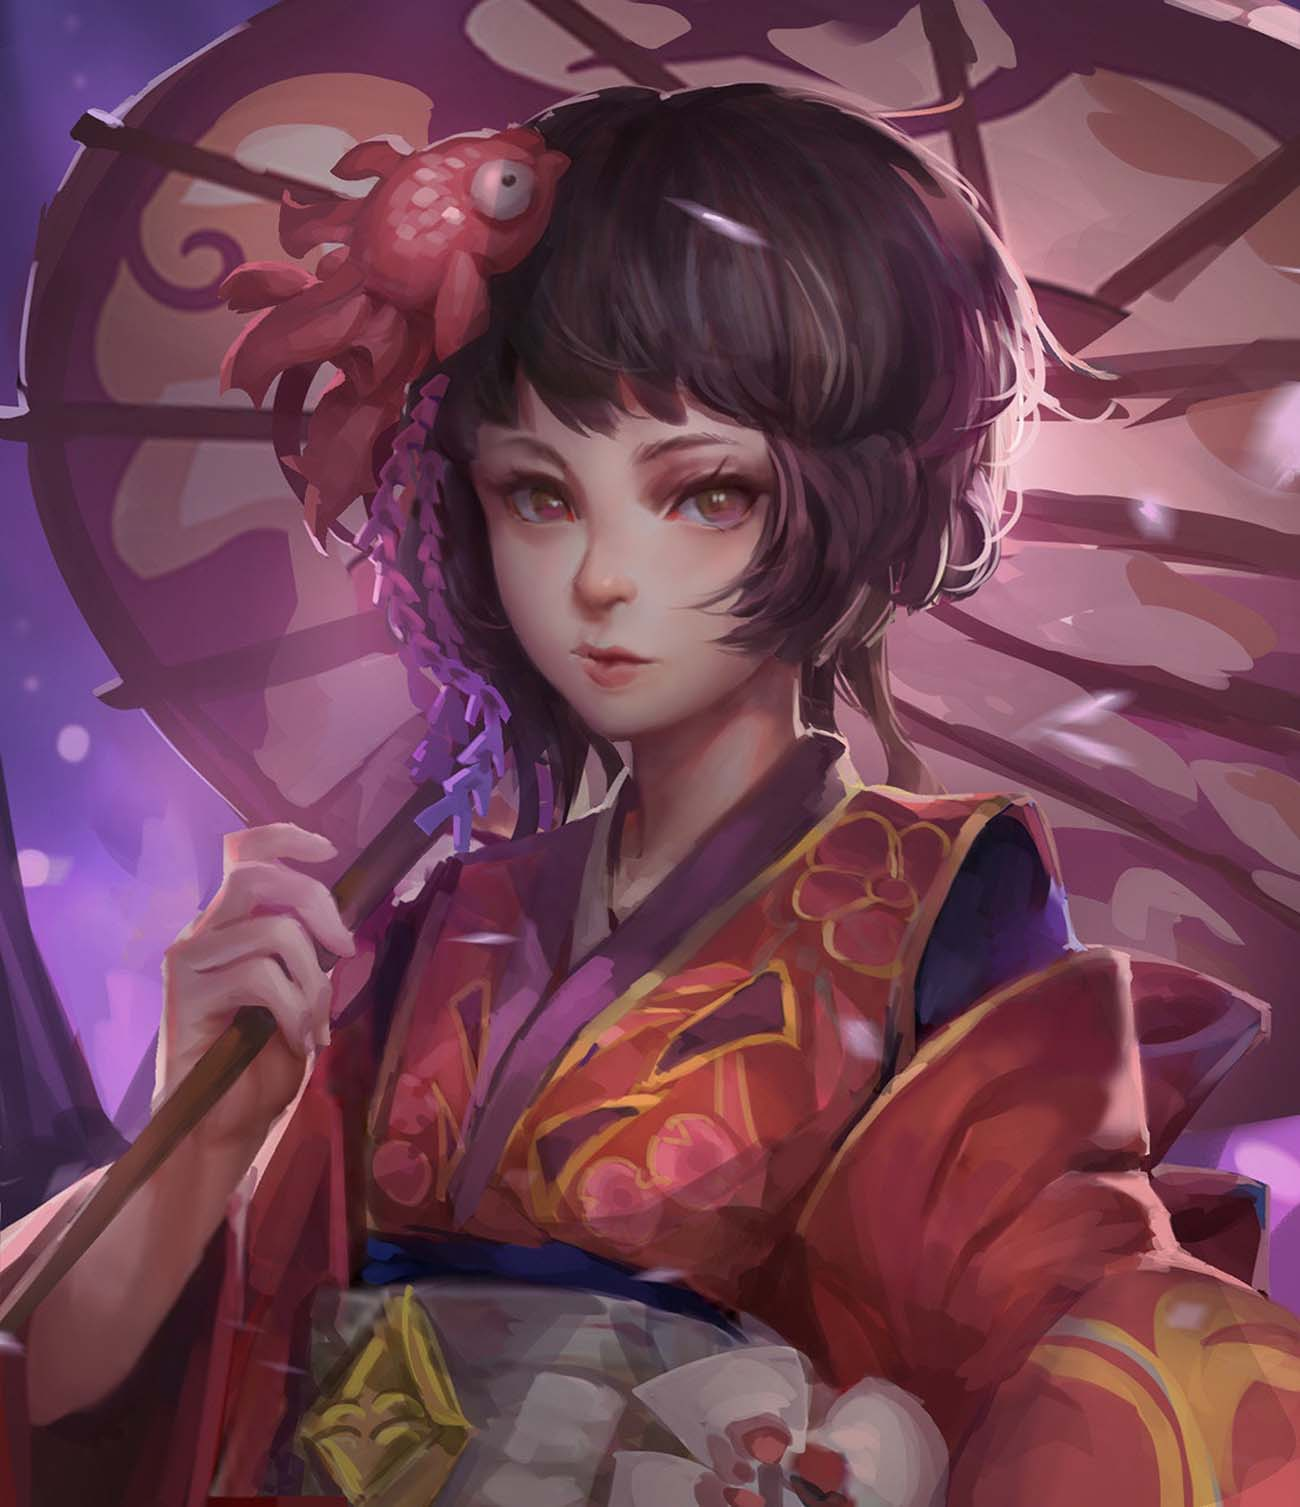 田 烏鴉 | Paintable.cc Digital Painting Inspiration - Learn the Art of Digital Painting! #digitalpainting #digitalart